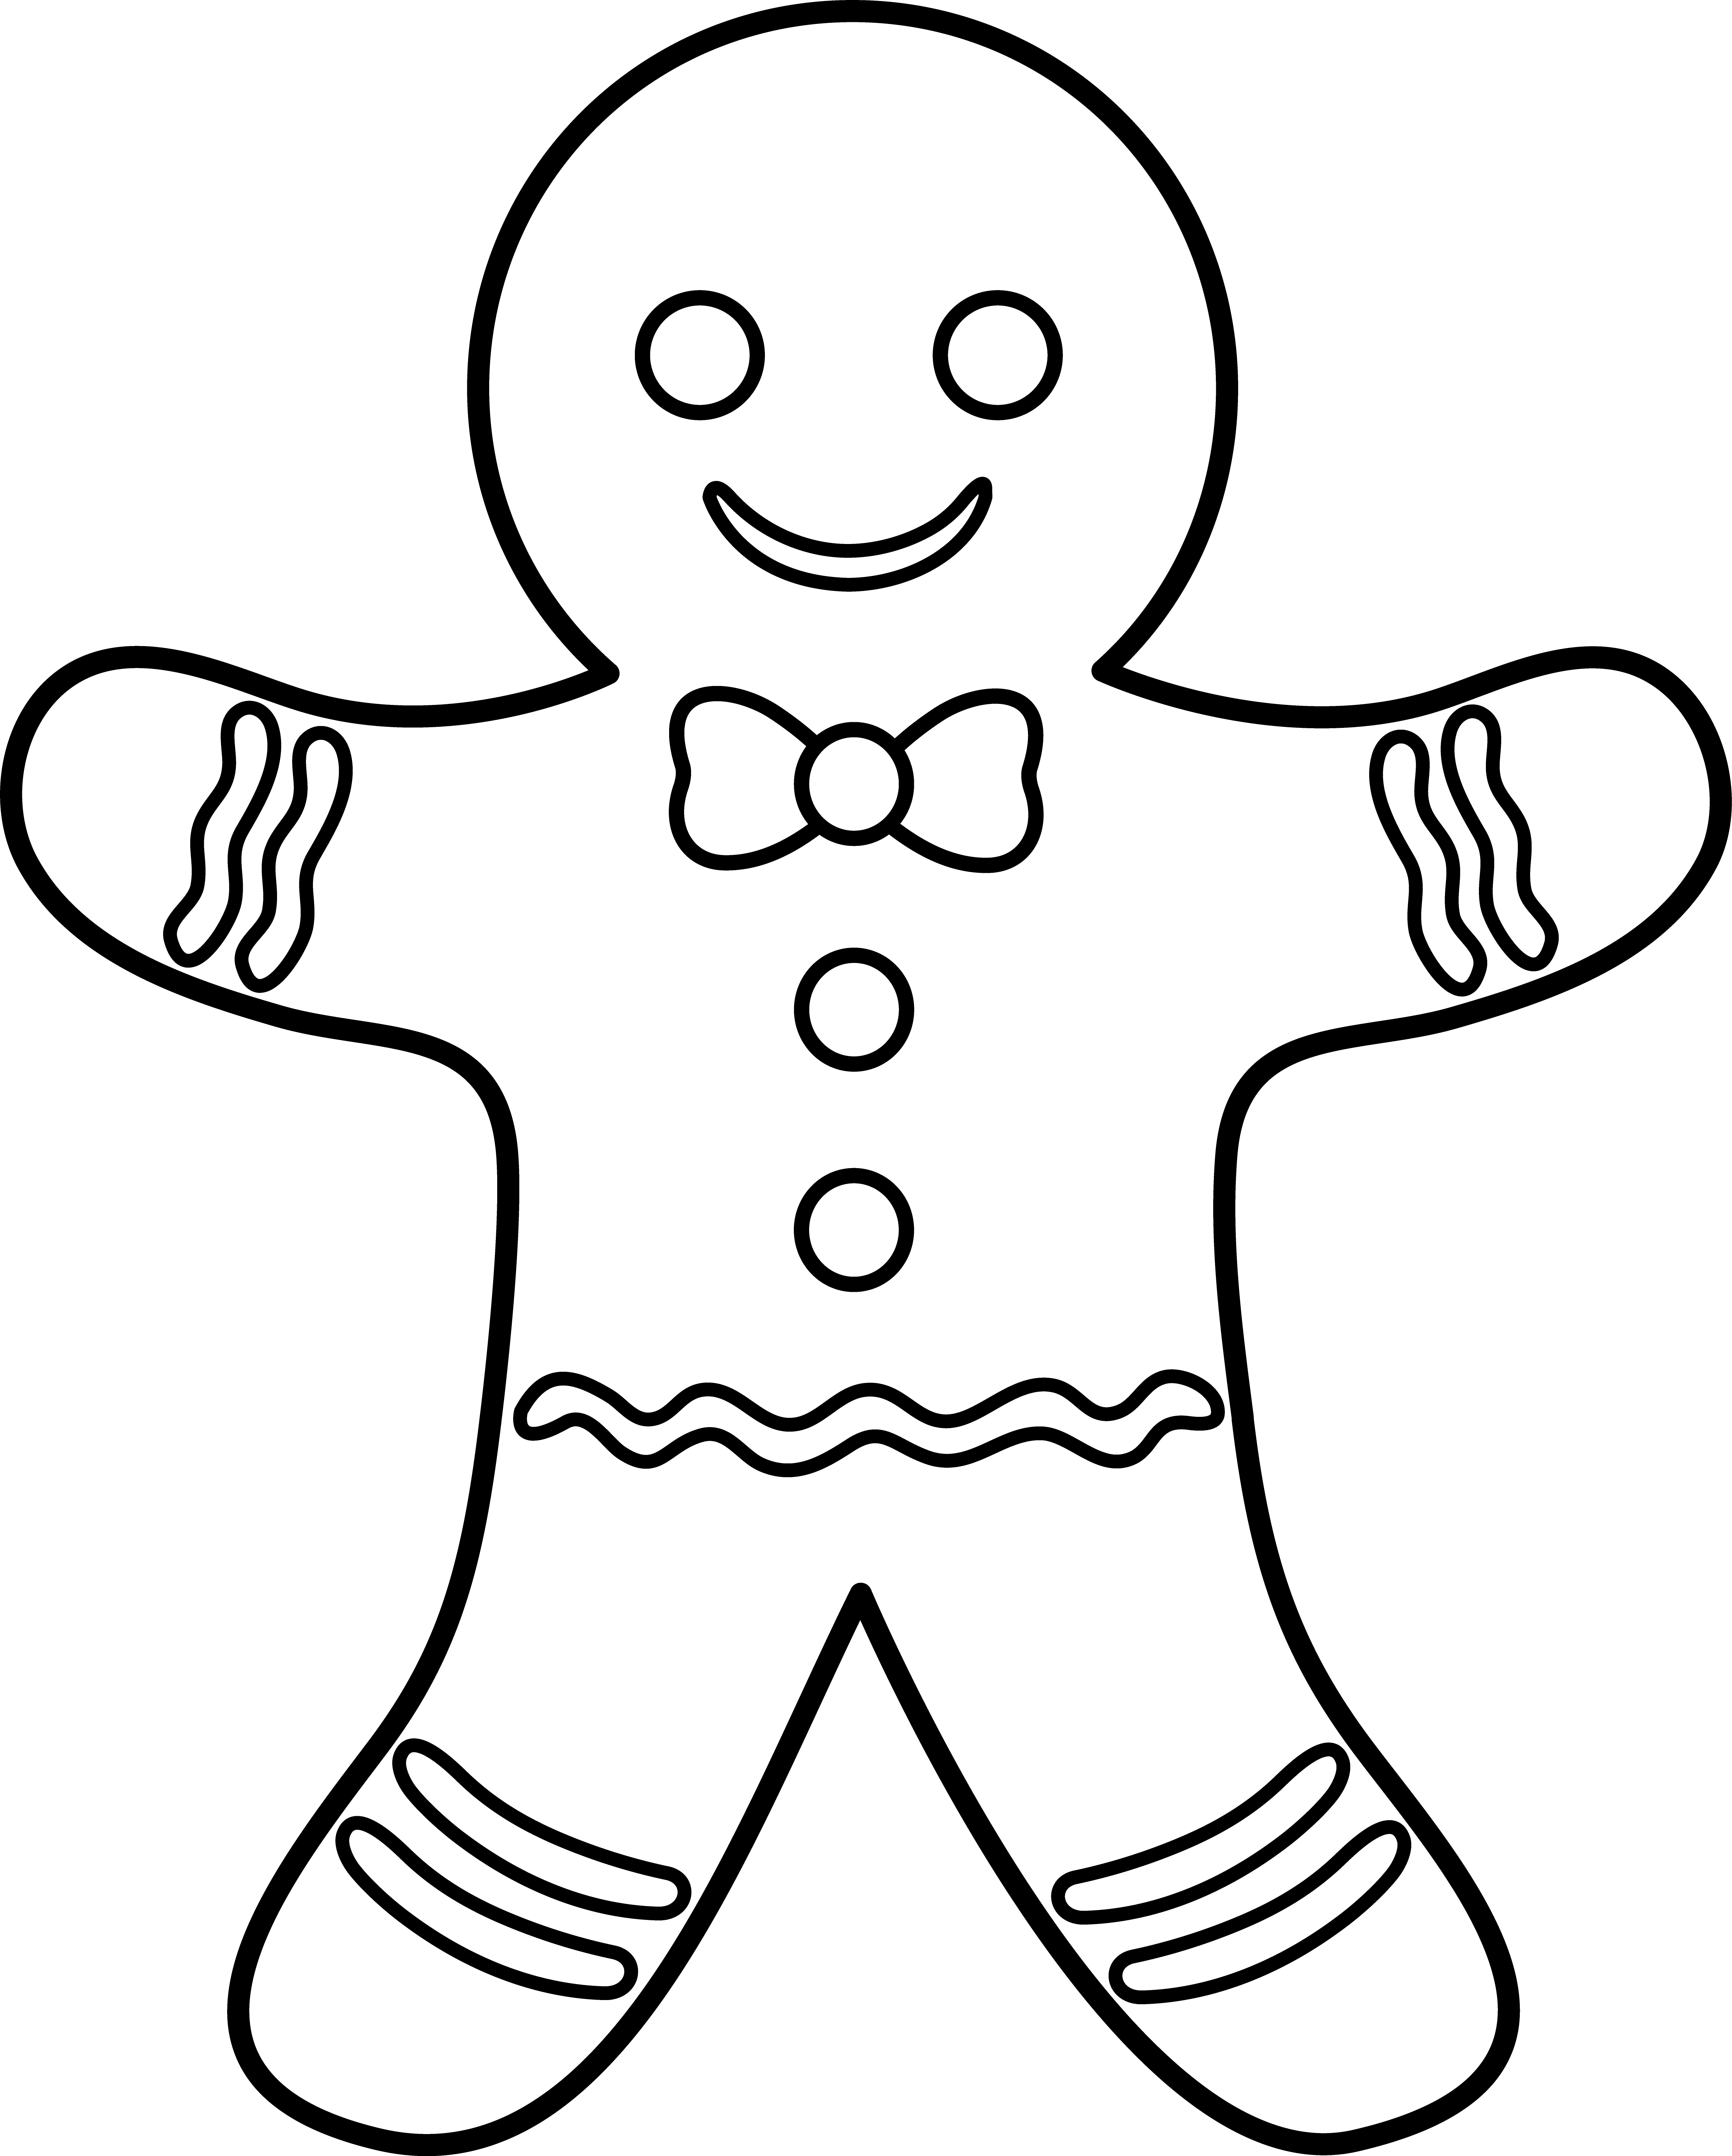 the gingerbread man template 15 gingerbread man templates colouring pages free gingerbread template man the